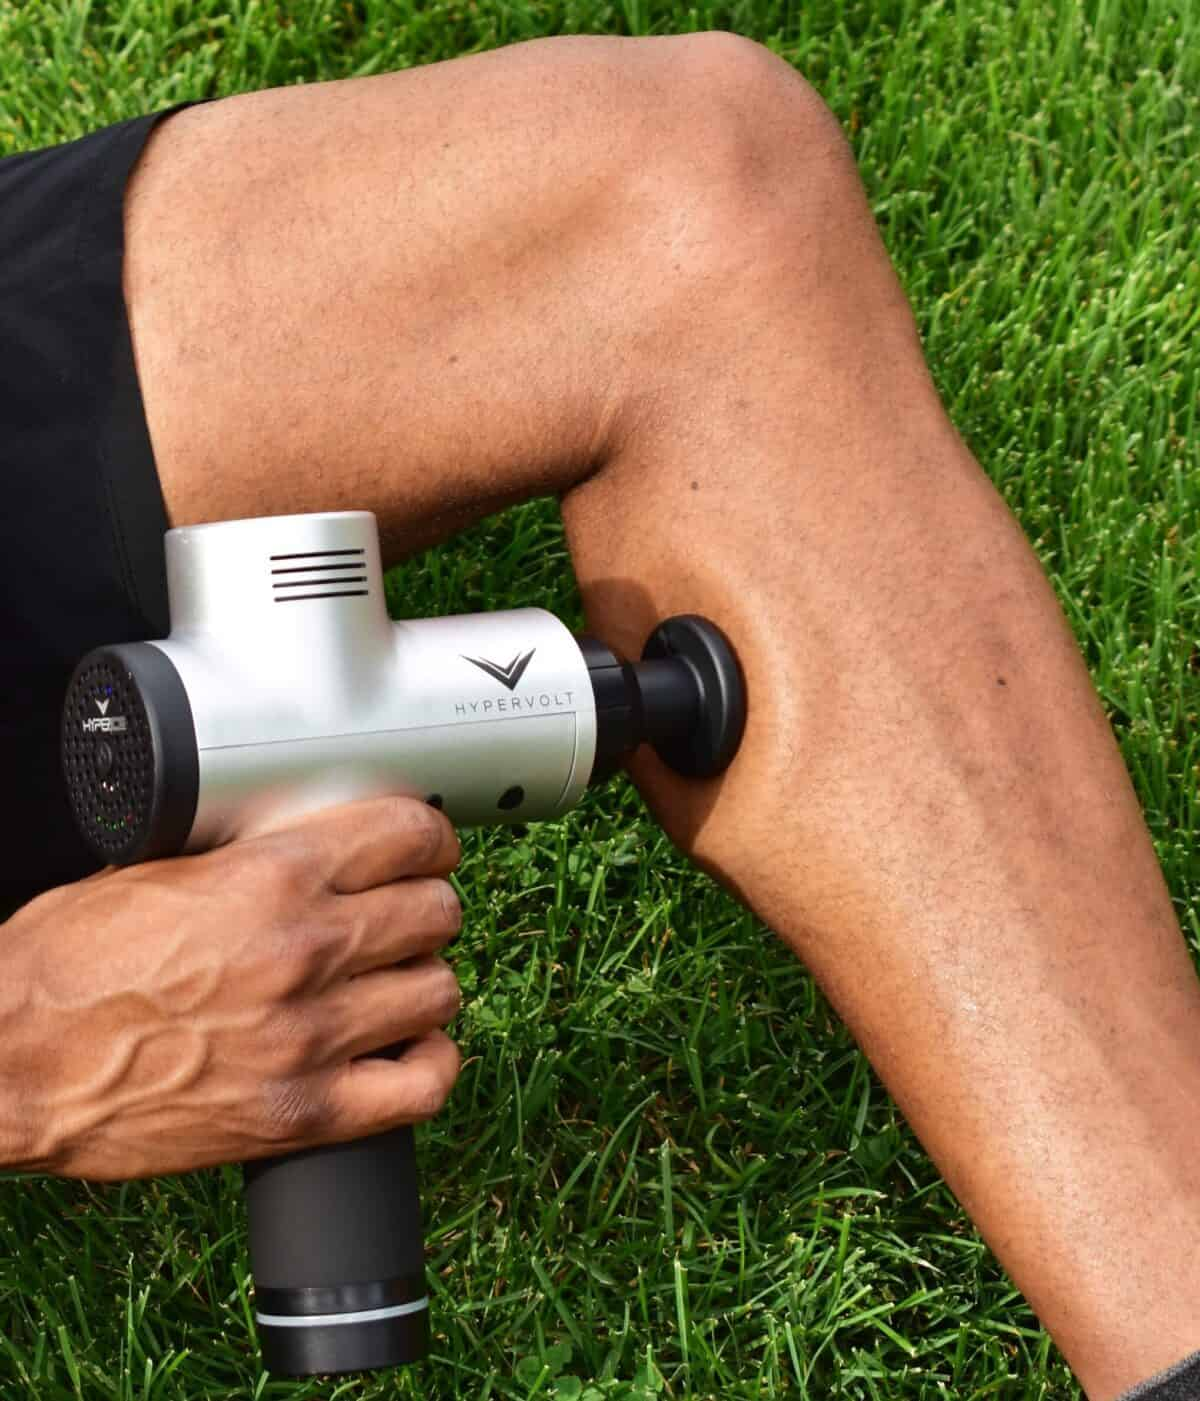 A man using a percussion massager on his calf.